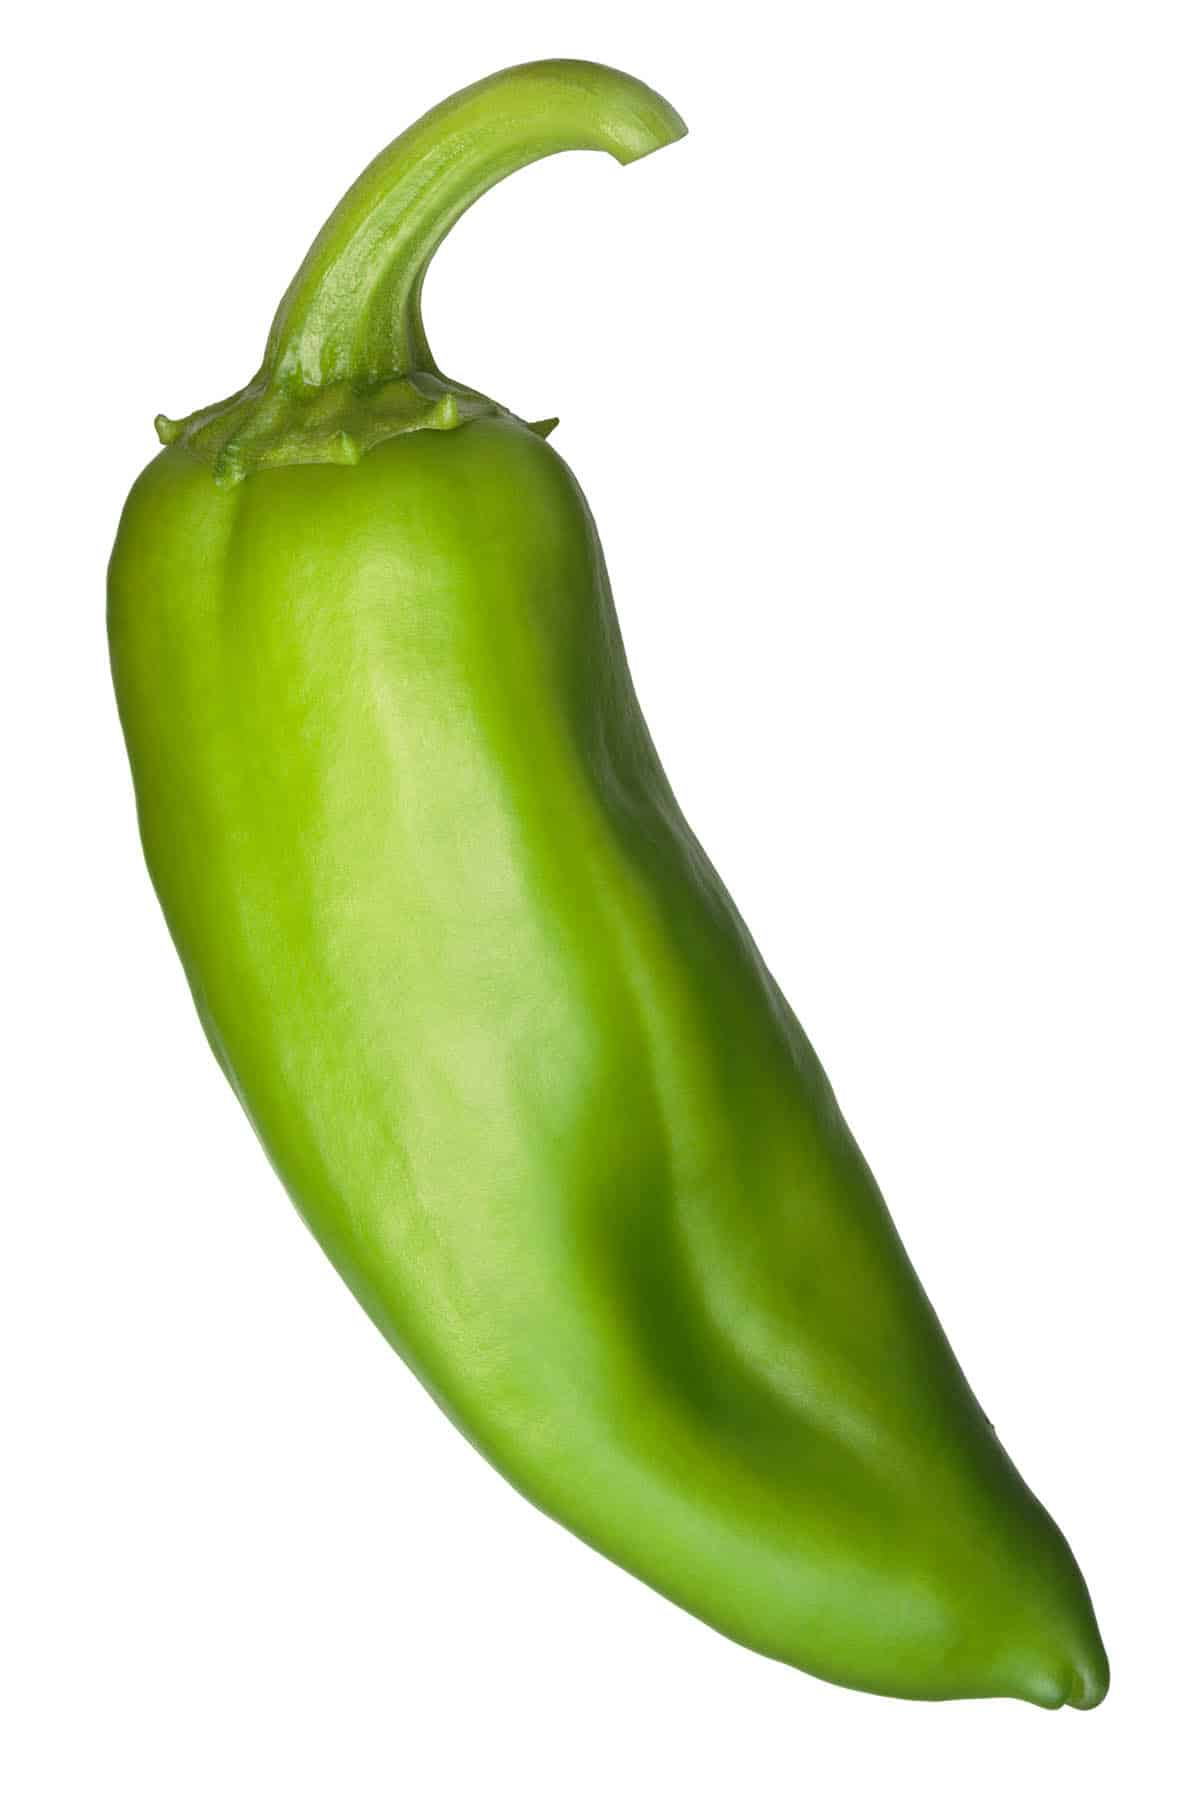 NuMex R Naky Chili Peppers